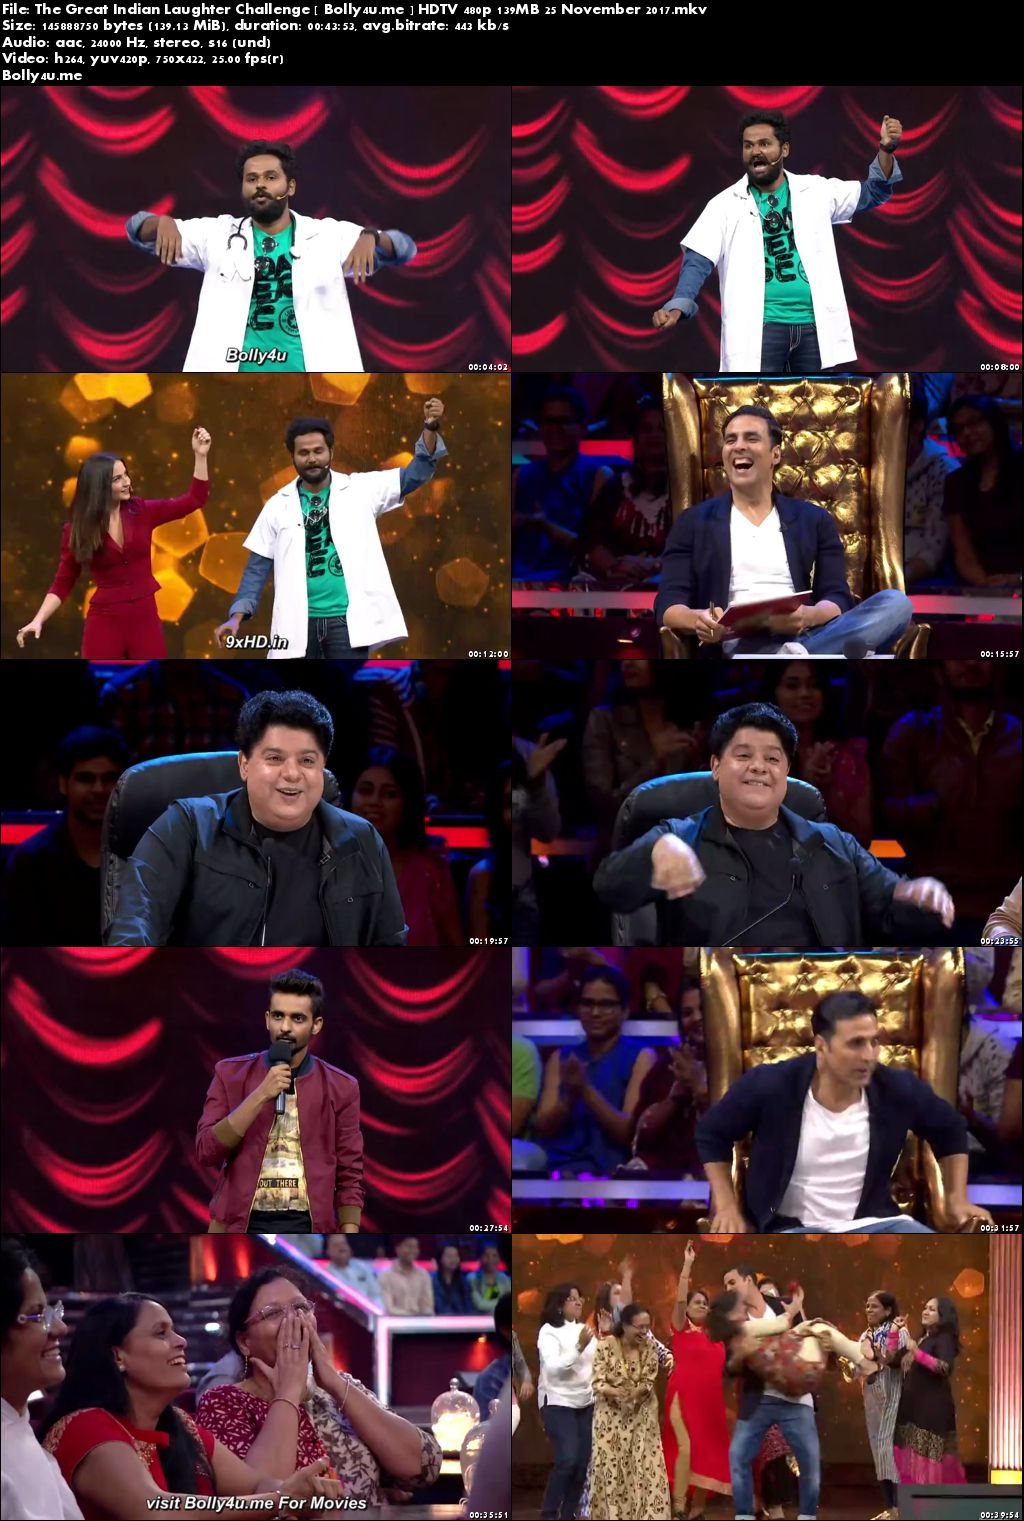 The Great Indian Laughter Challenge HDTV 480p 140MB 25 November 2017 Download